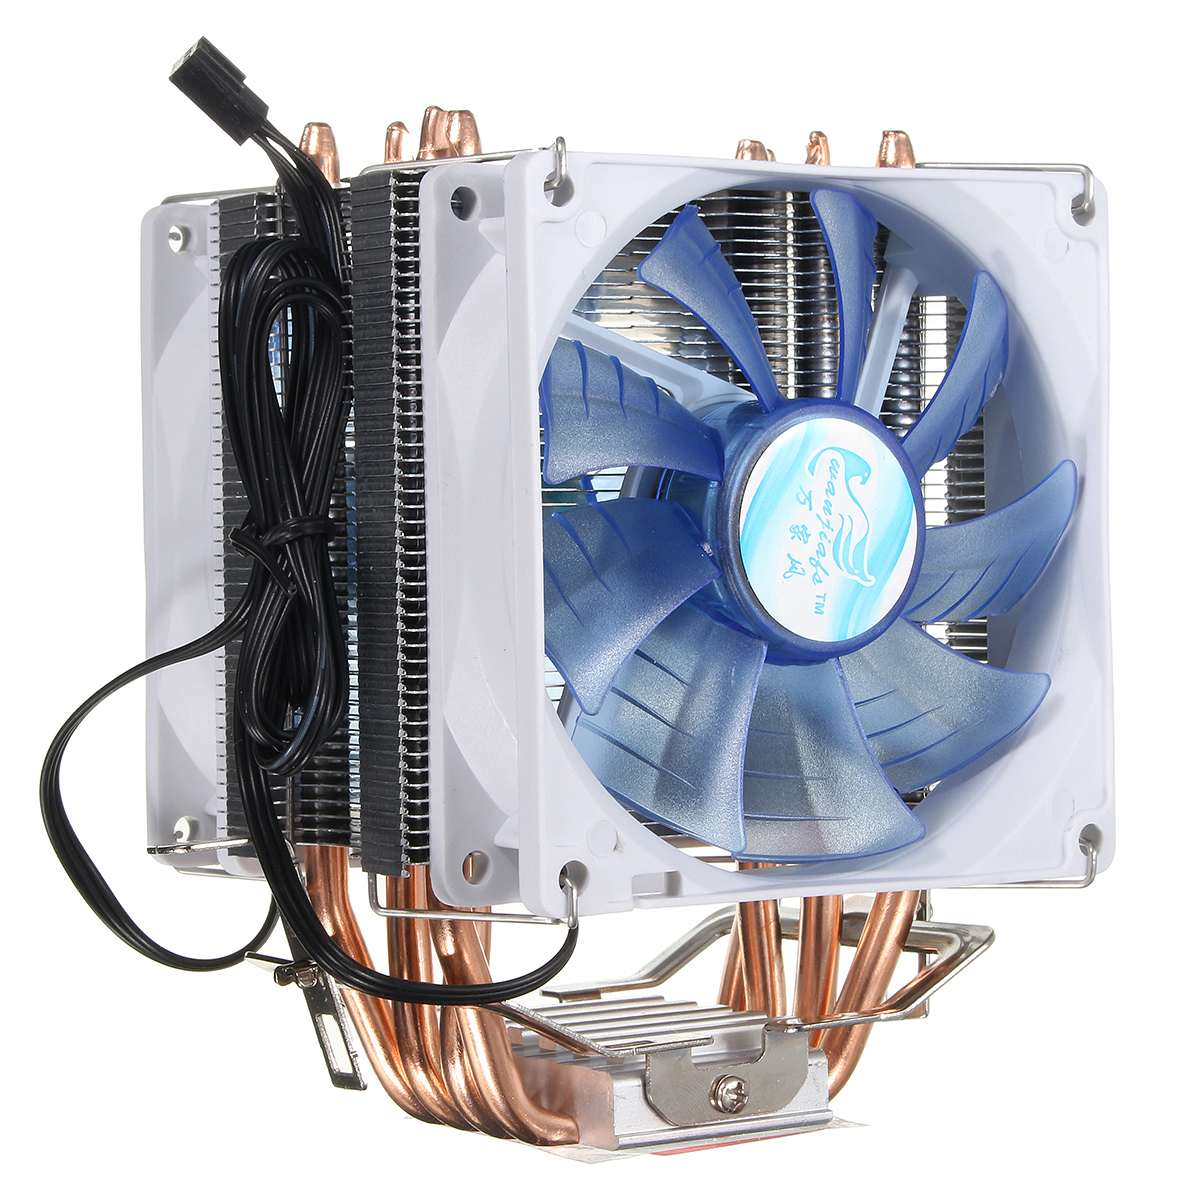 12V Dual CPU <font><b>Cooler</b></font> Fan Quiet Blue LED Light 92x92x25mm 3pin Powerful Fan Heatsink for Intel LGA775/<font><b>1156</b></font>/1155 for AMD AM2/3 image